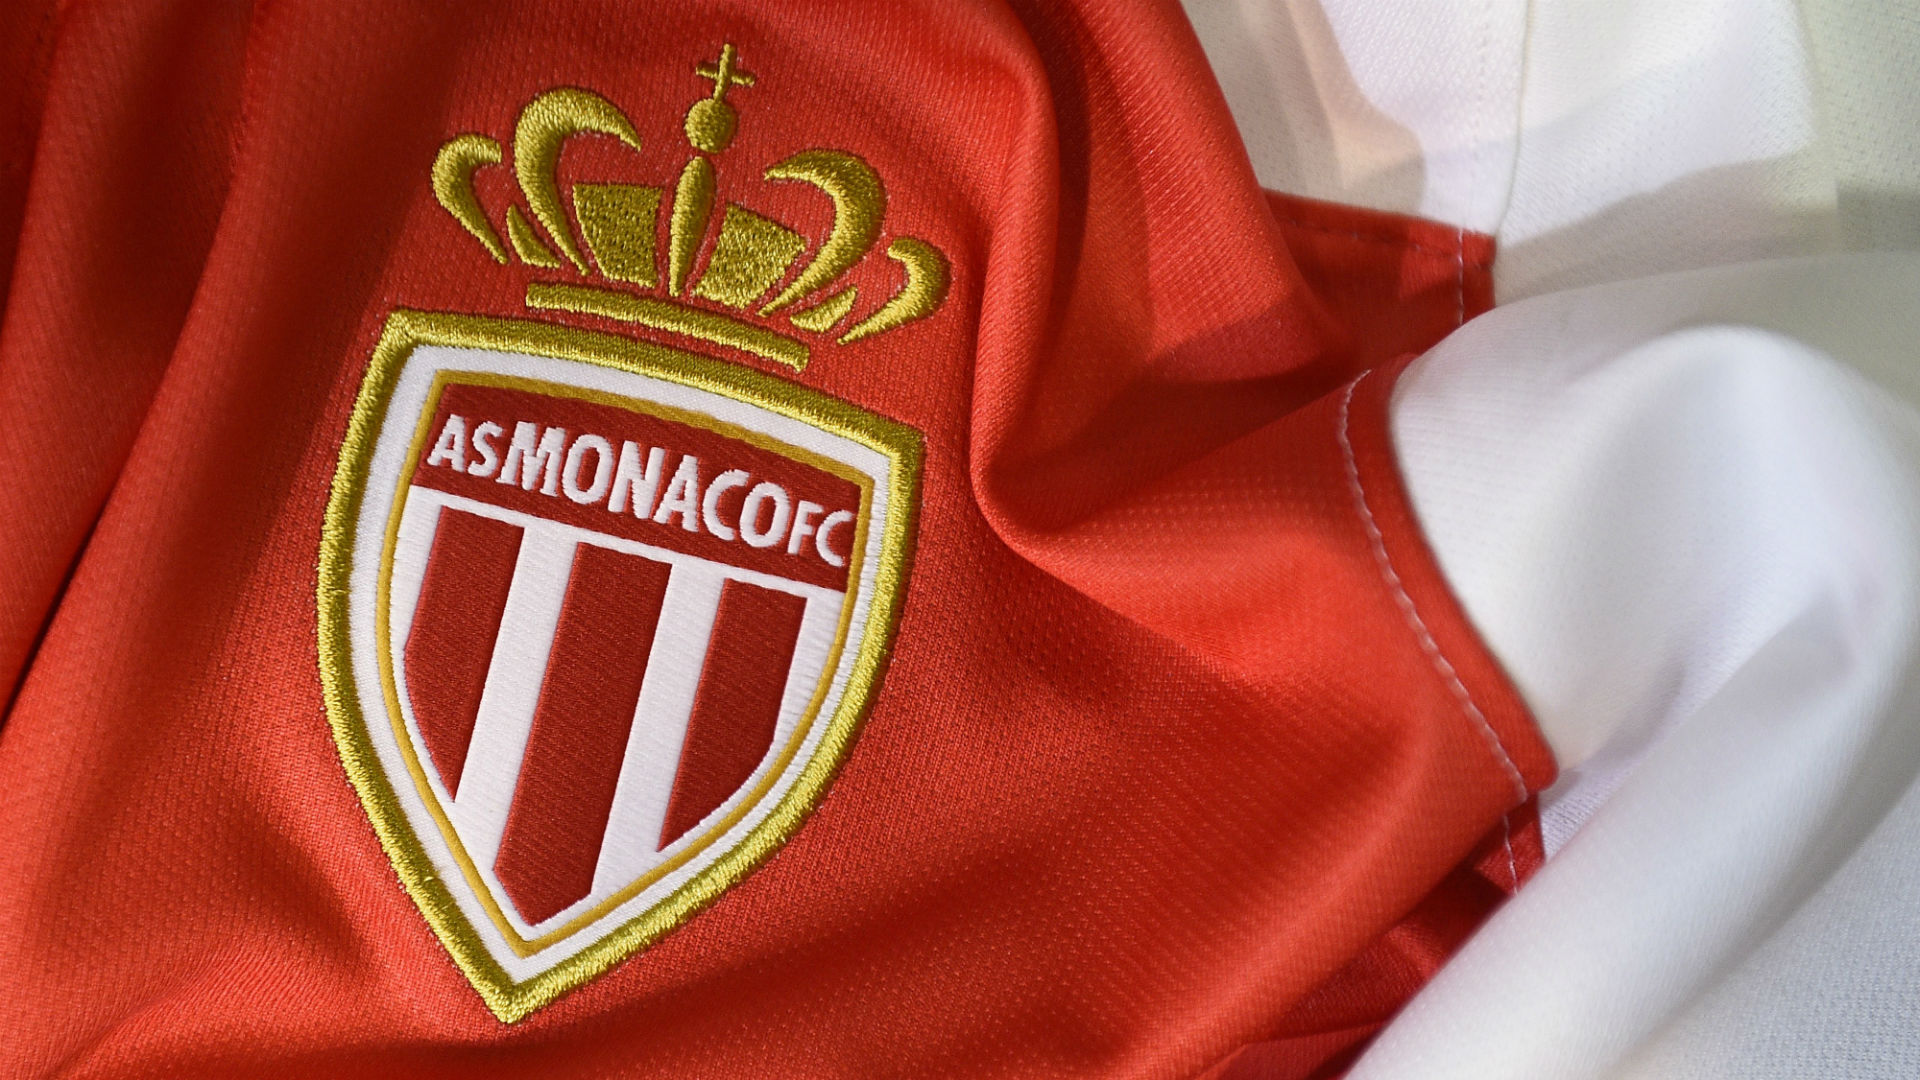 OFFICIEL - L'AS Monaco recrute le jeune gardien Gabriel Pereira